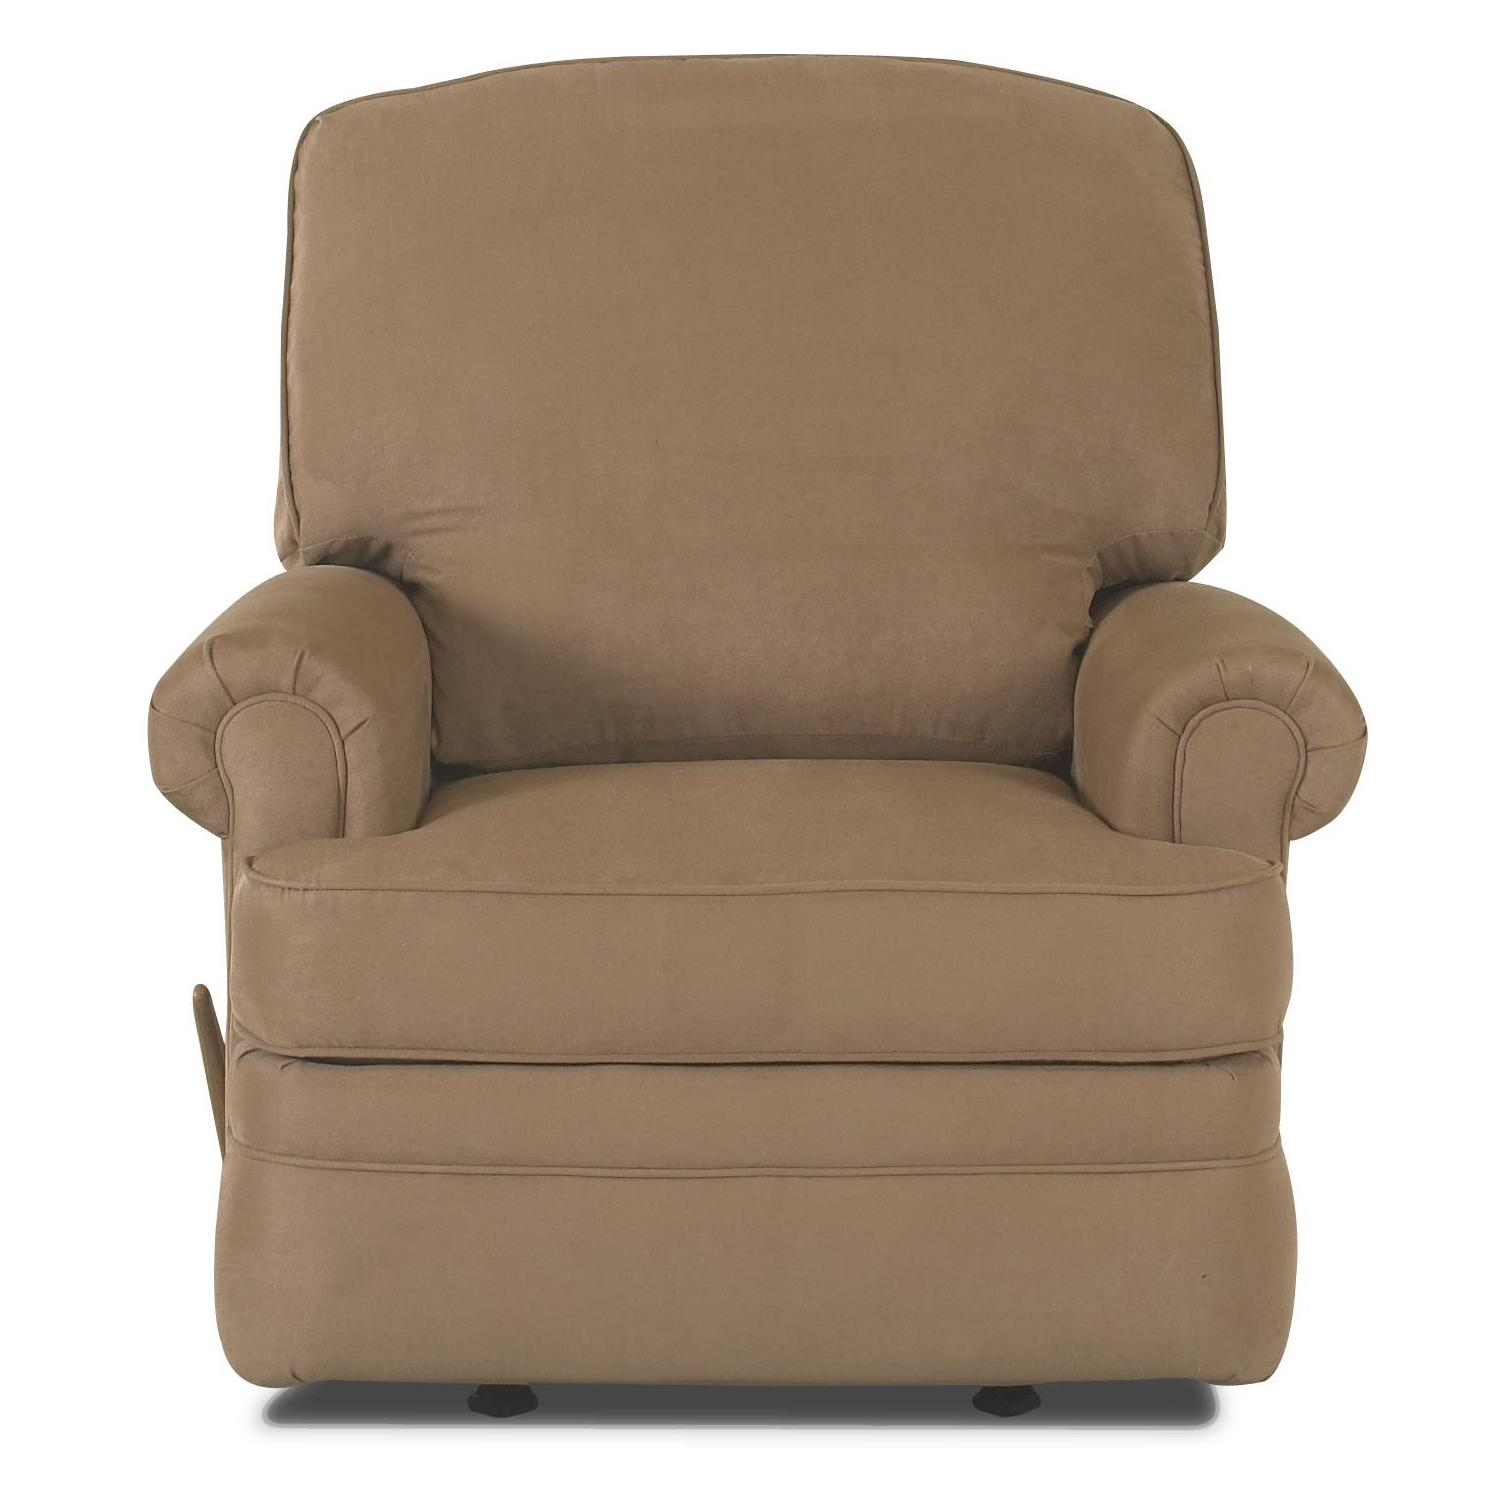 Stanley Rocking Reclining Chair by Klaussner  Wolf and